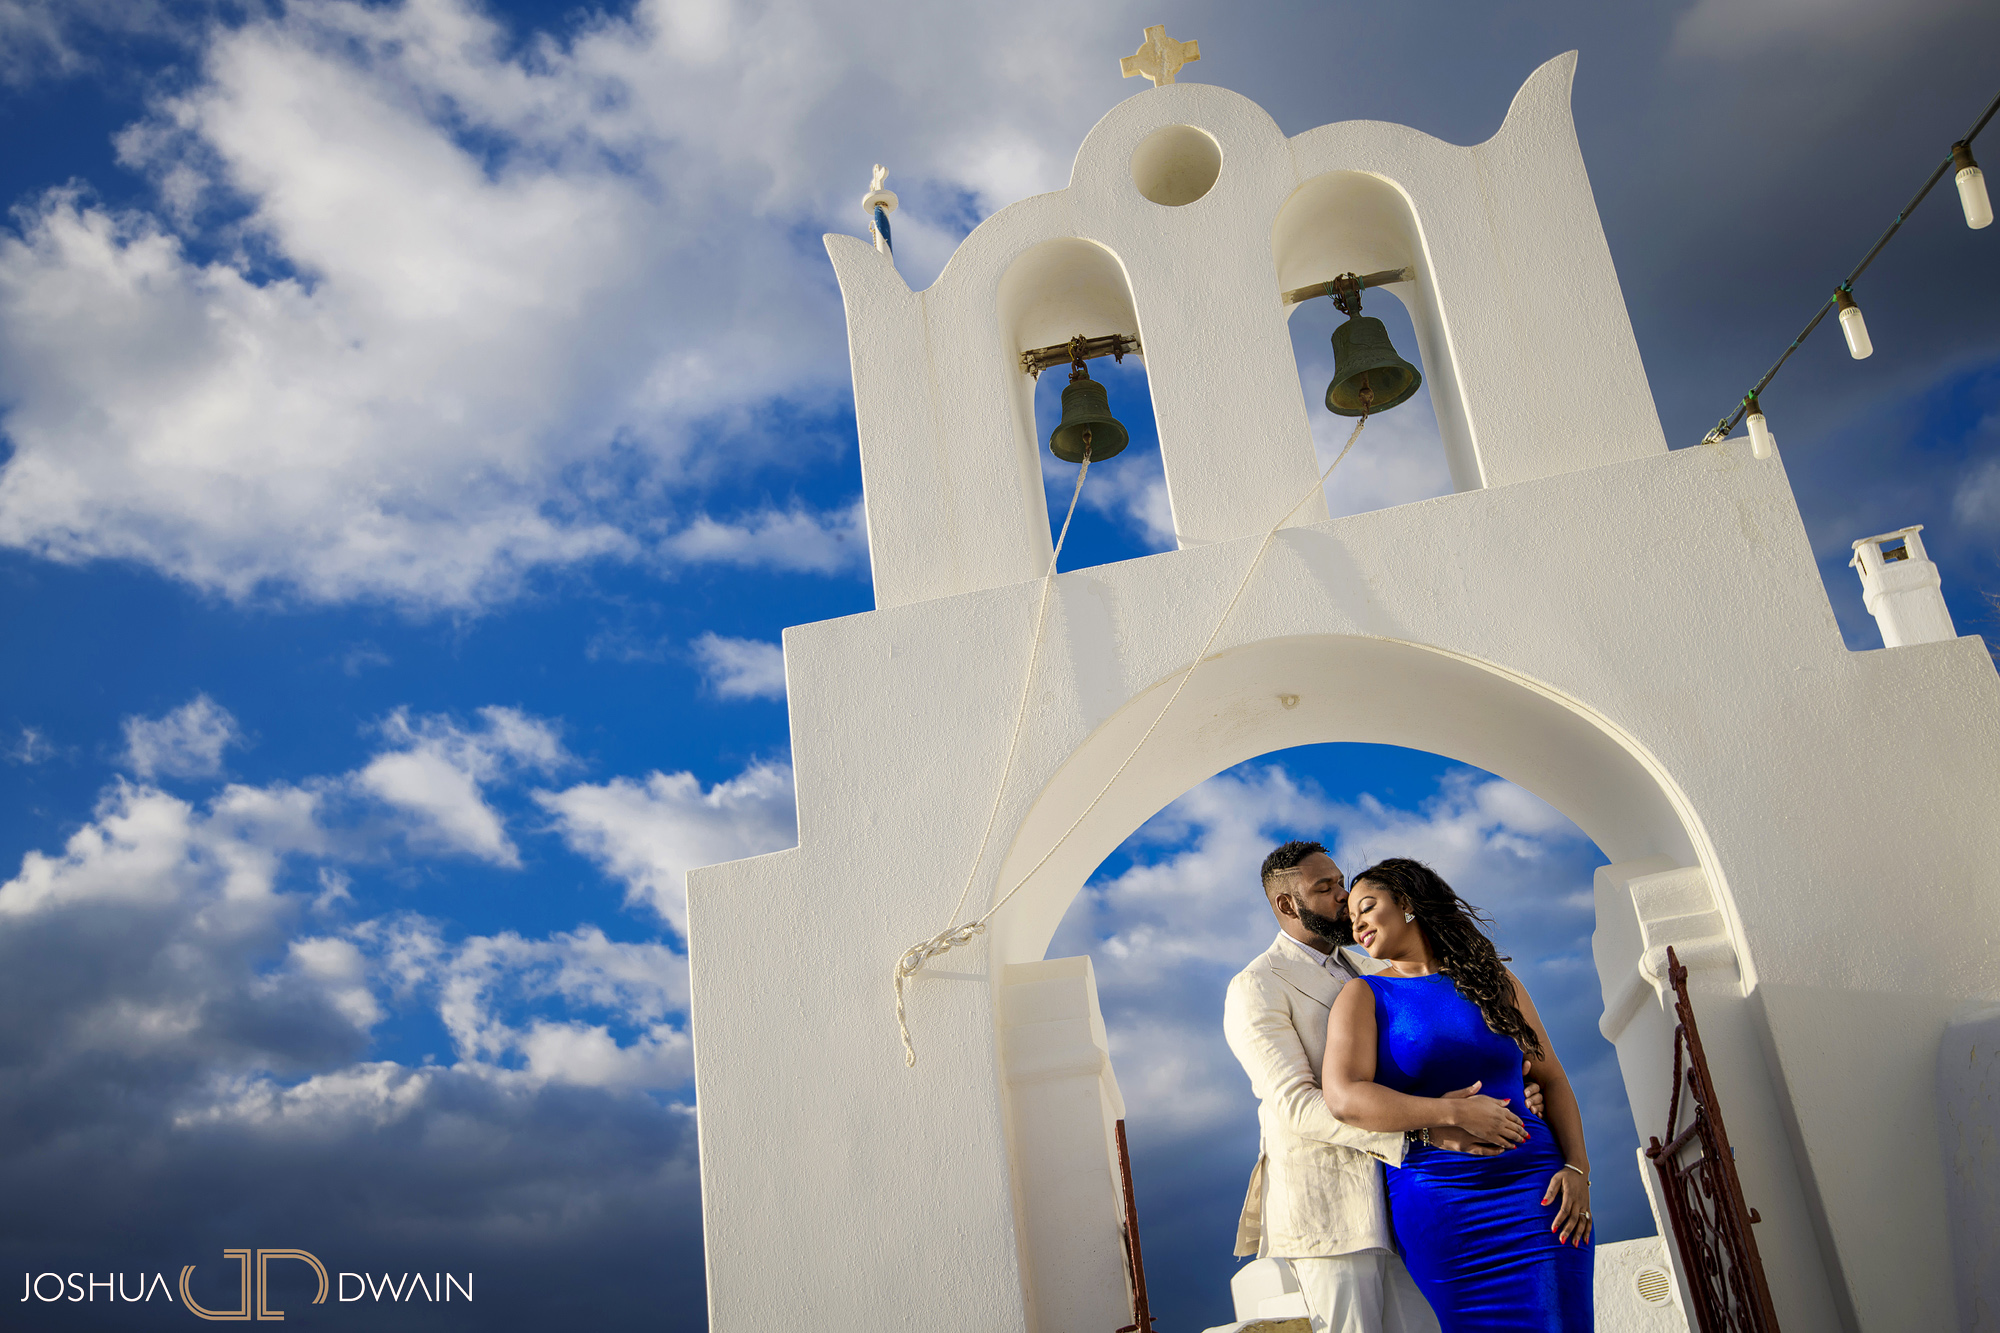 ekene-issac-22-santorini-oia-thira-greece-wedding-engagement-photos-african-american-destination-photographer-joshua-dwain